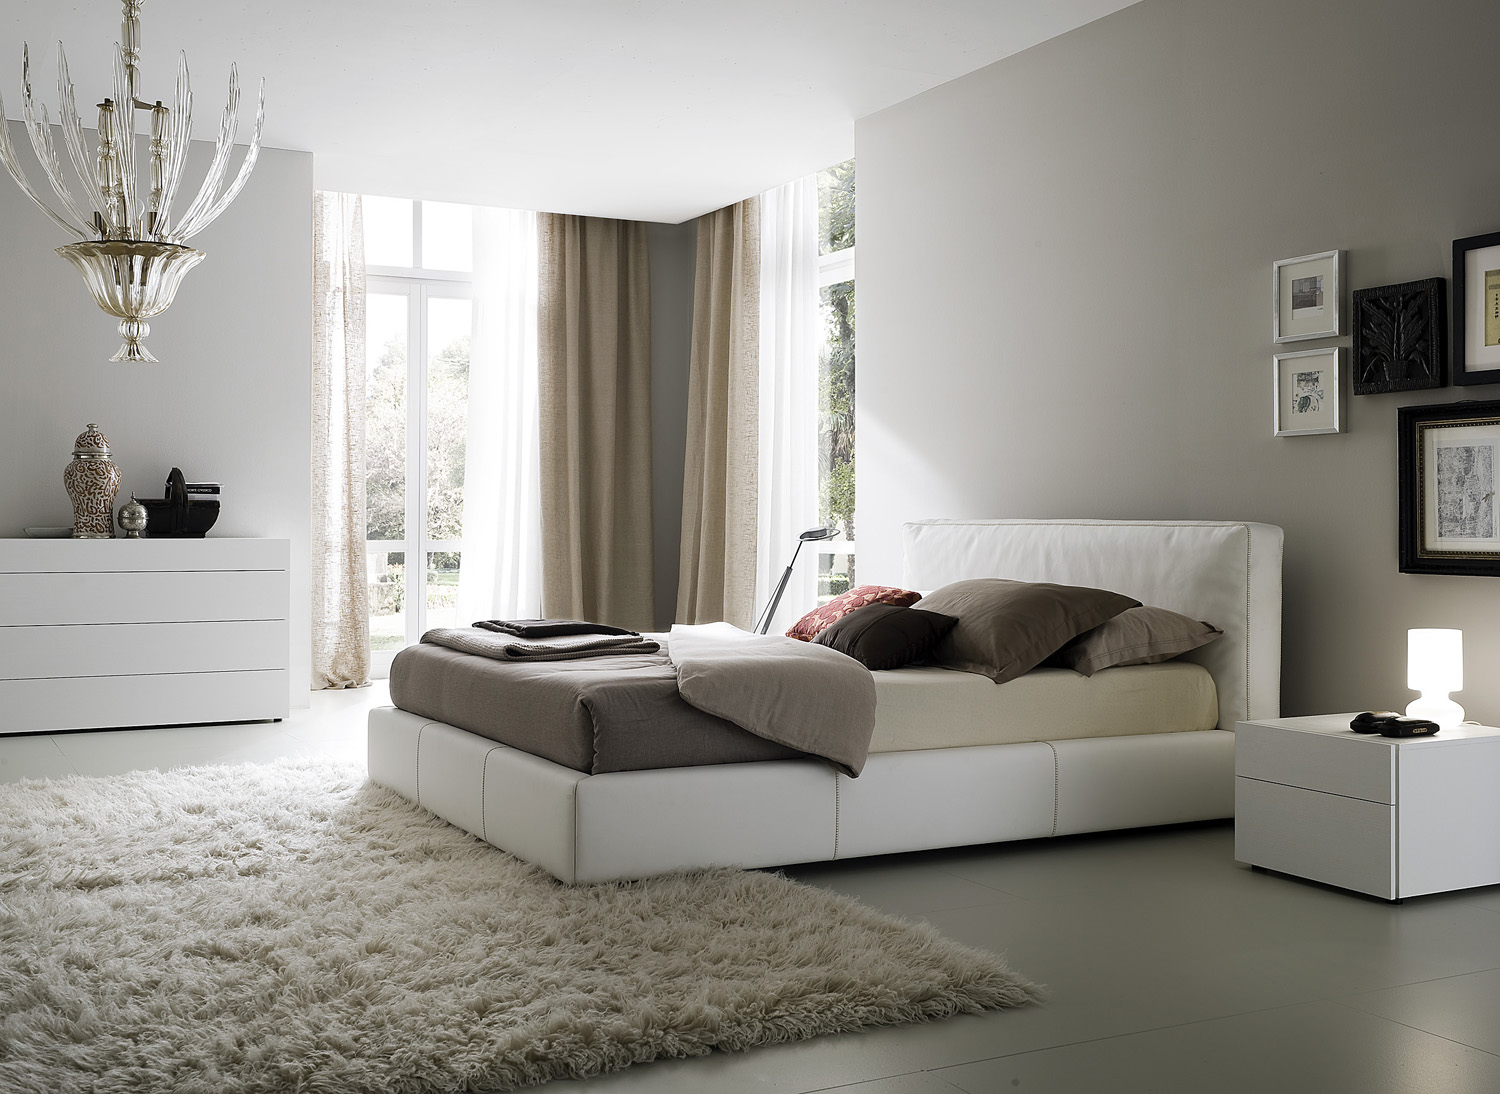 Bedroom decorating ideas from evinco for Innovative bedroom designs